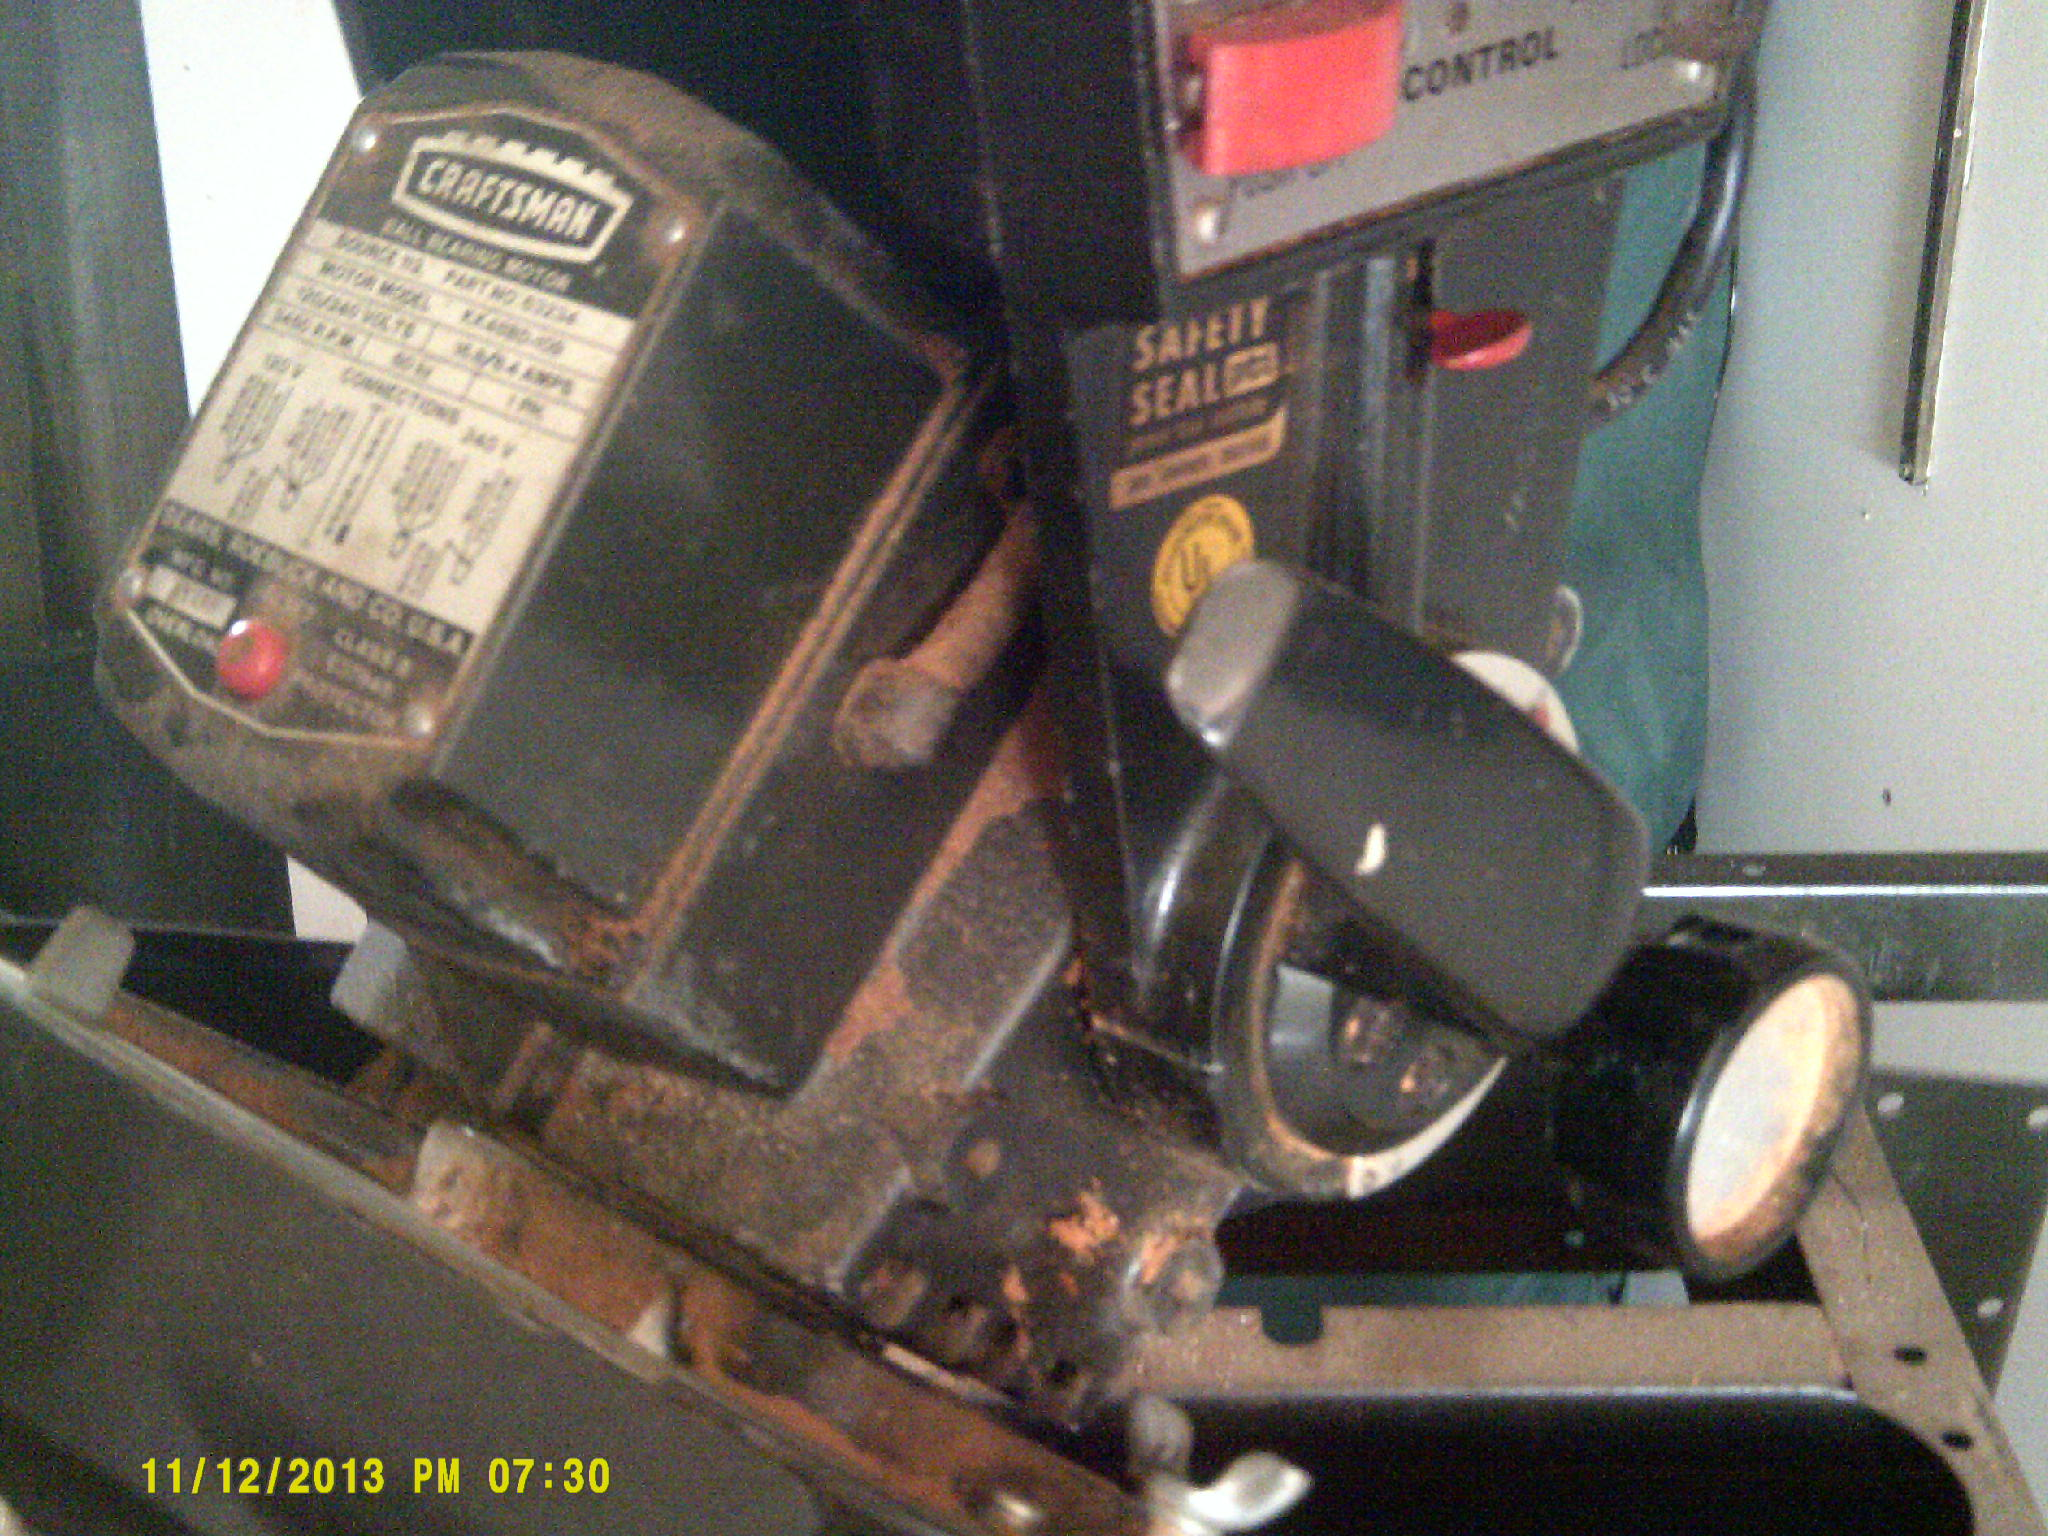 Power Tools  I Have A Craftsman Table Saw And Radial Arm Saw Which Are 220 Volt